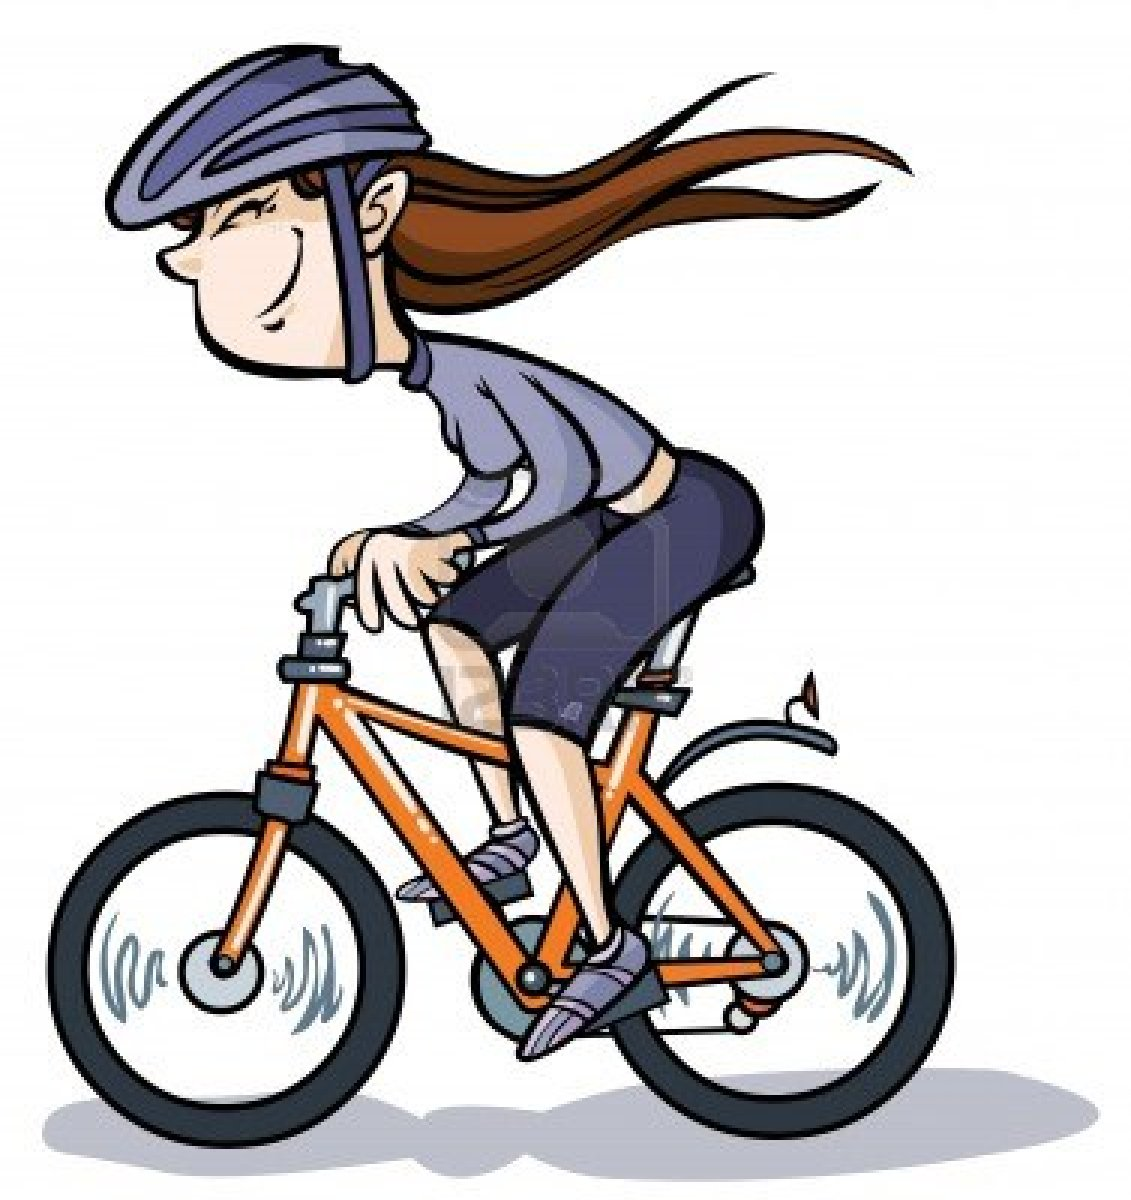 Cycling Cartoon Images   Wallpaper Hd Wide